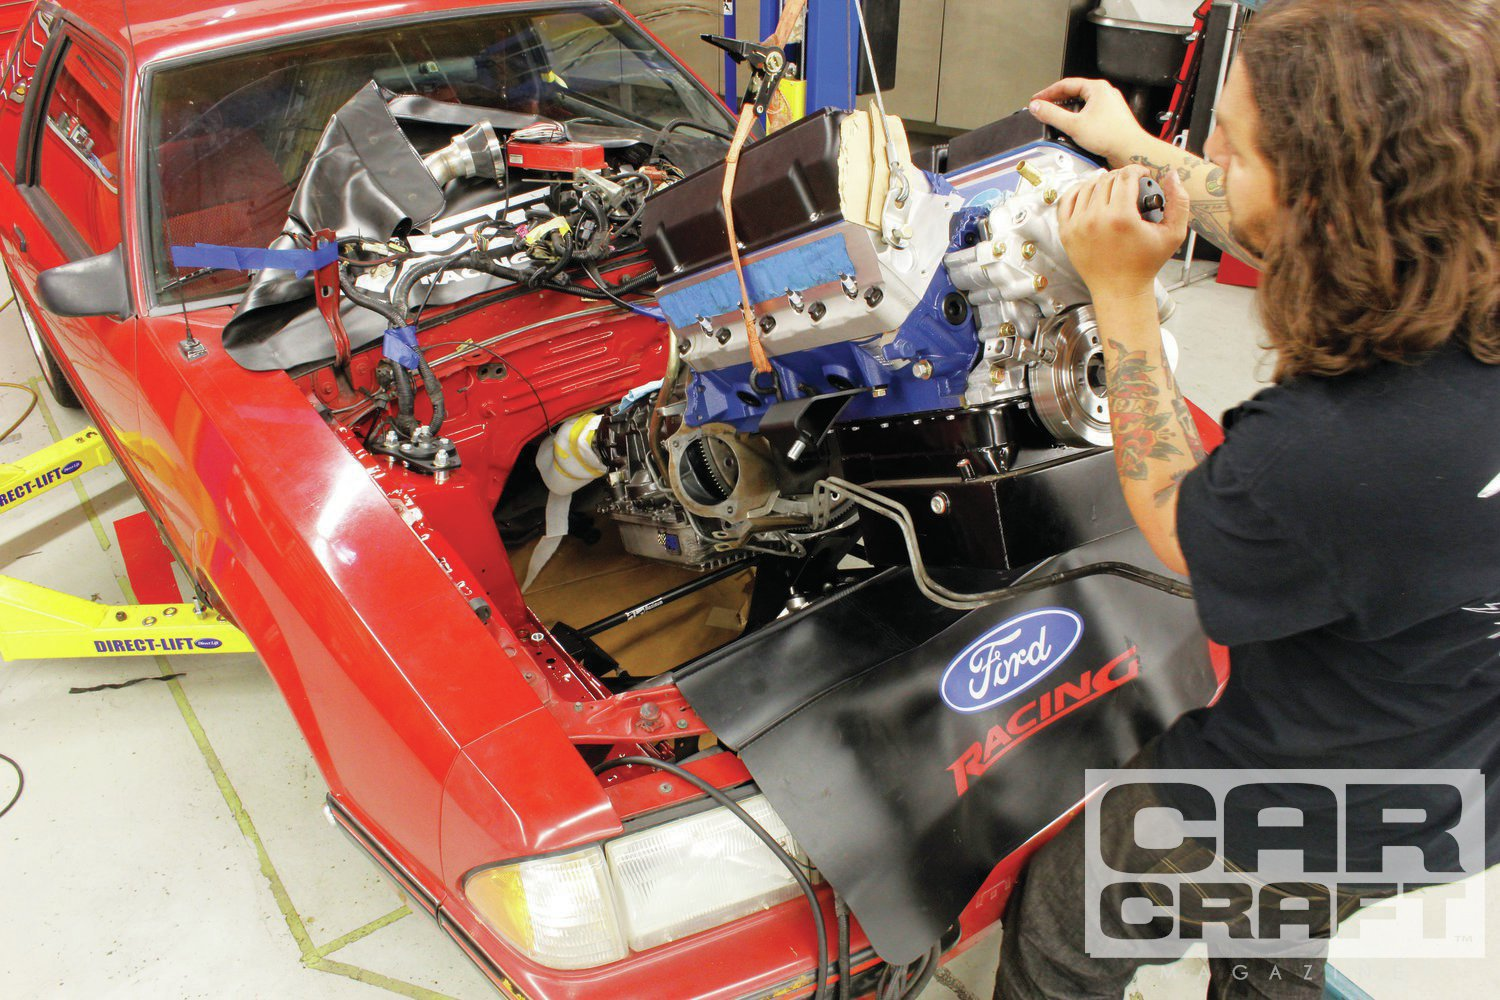 If you have been following along, you know that we took a stock 4-cylinder Mustang with an existing 302 swap and added a Hellion Street Heat turbo kit. The car ran 11.70 at 115-ish with 1.59 60-foot times and a little wheelie. Then we got bored and pulled the engine.